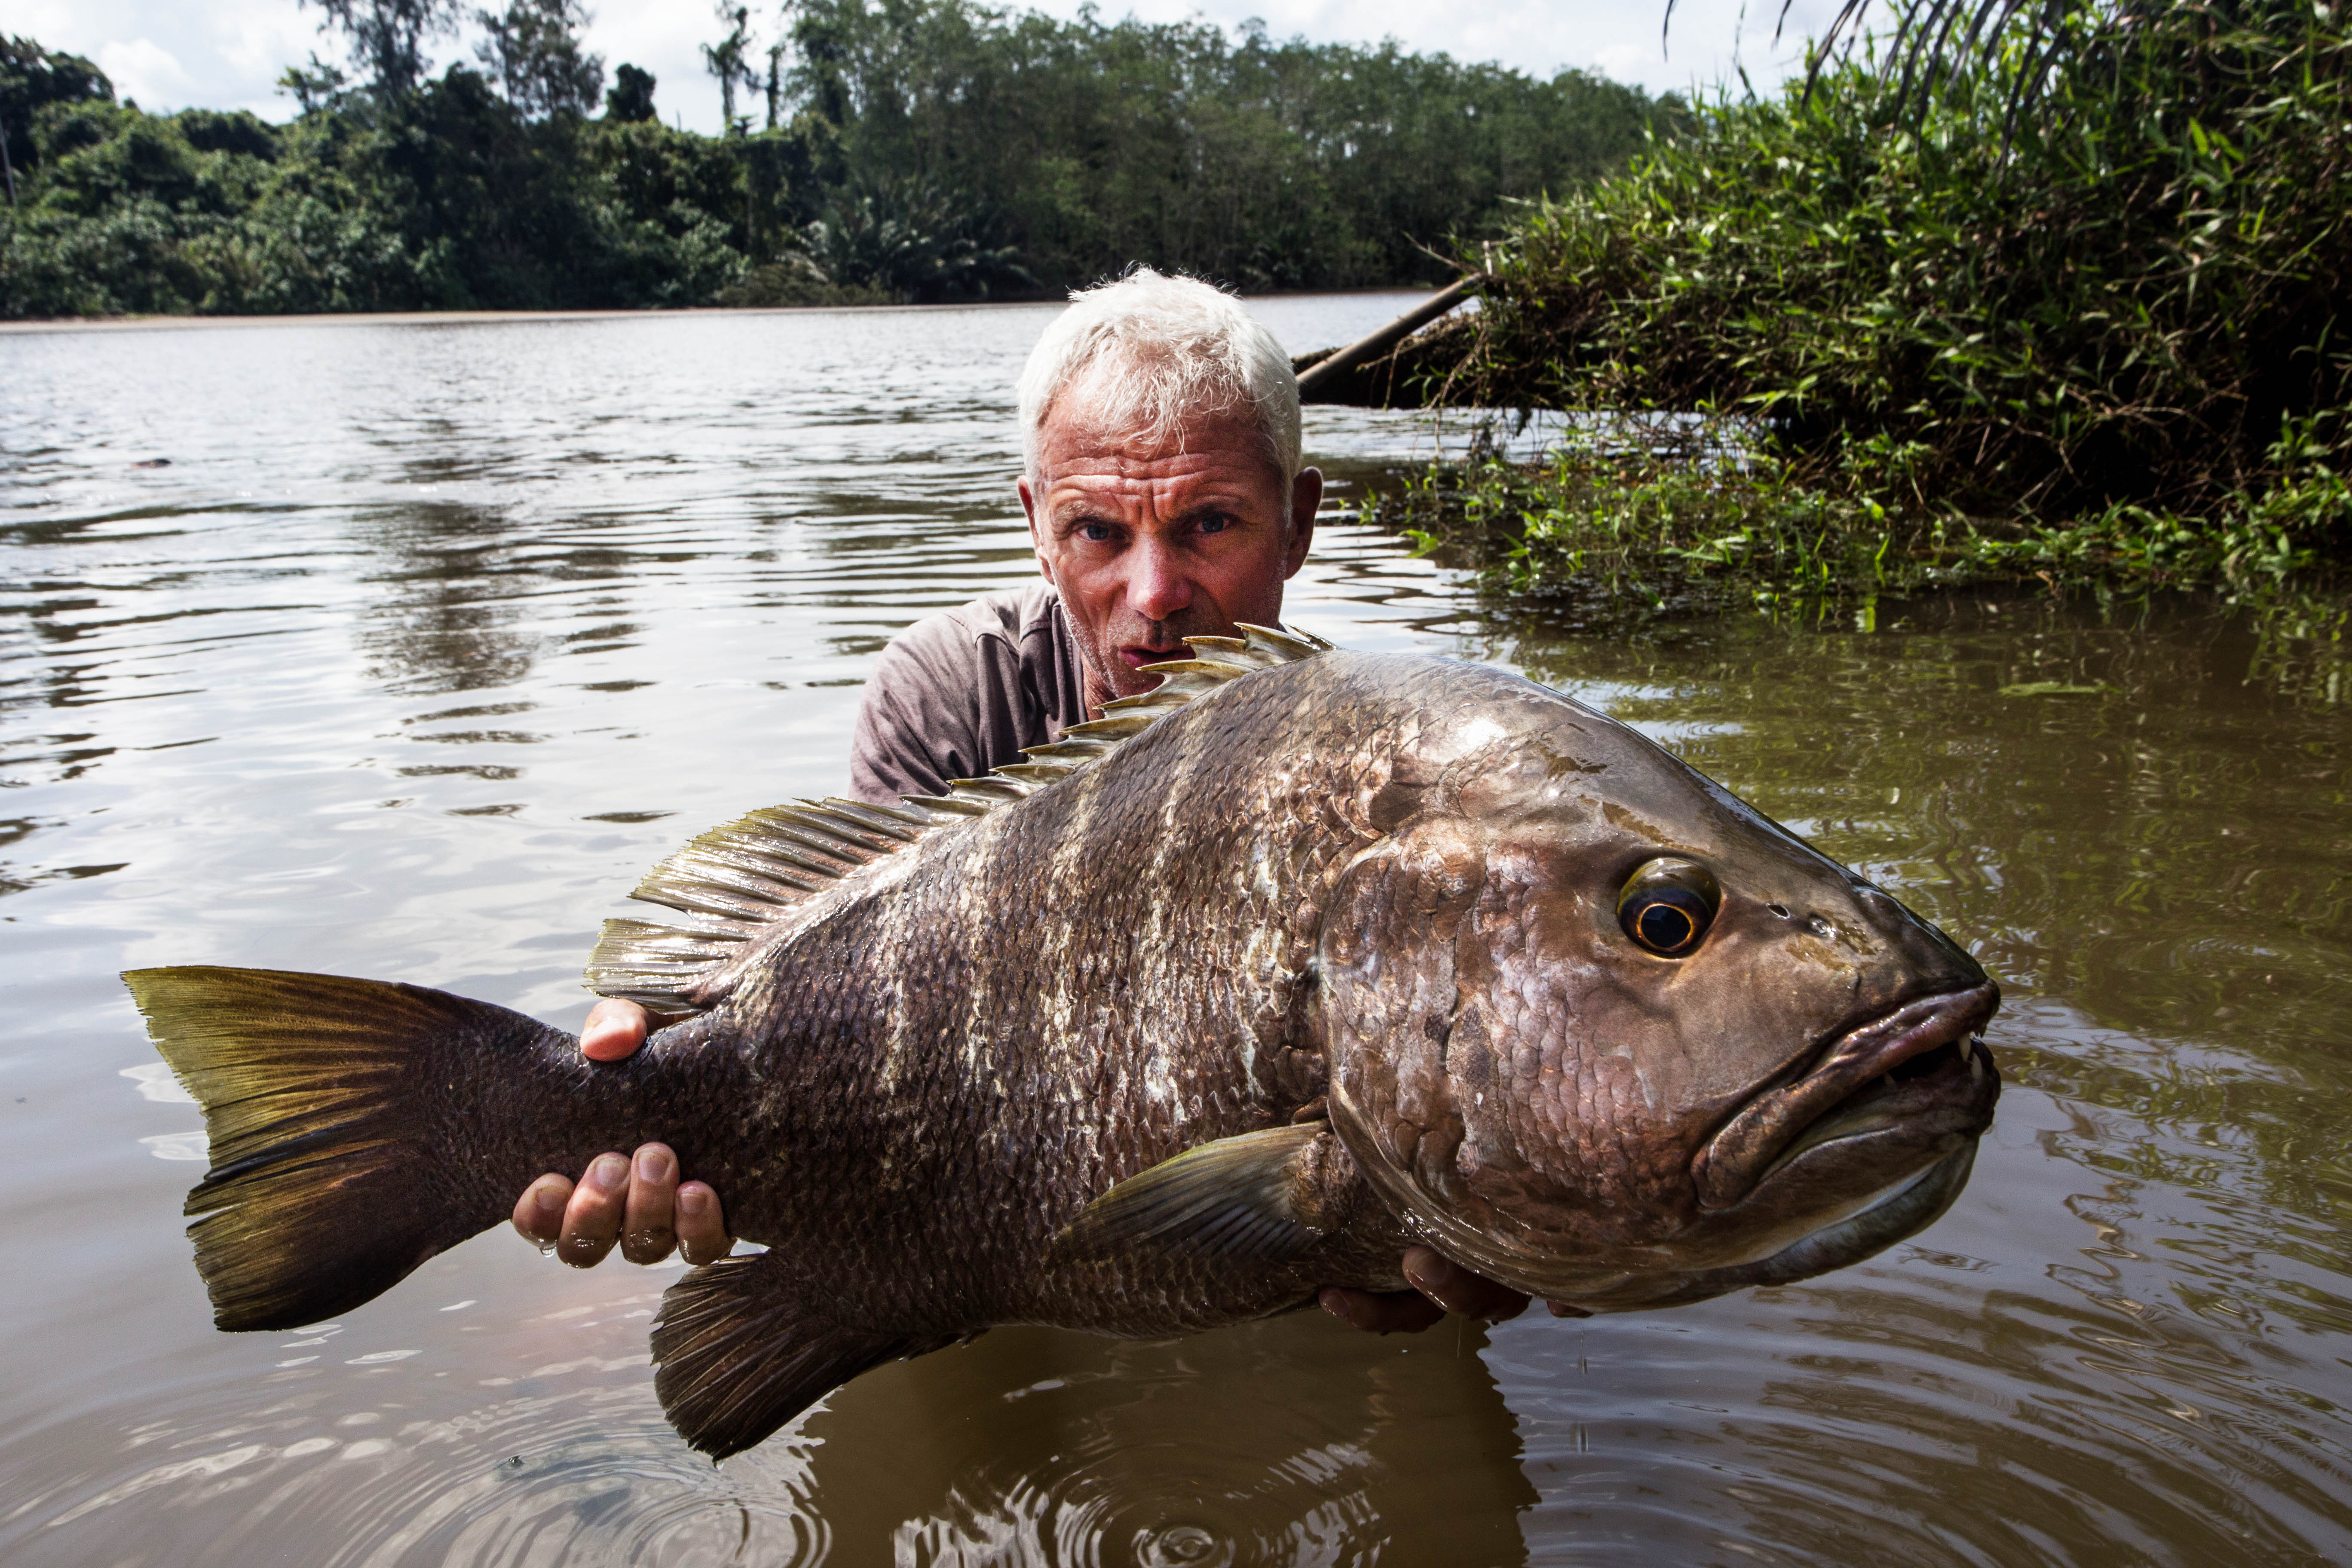 Jeremy Wade explains ITV River Monsters final series